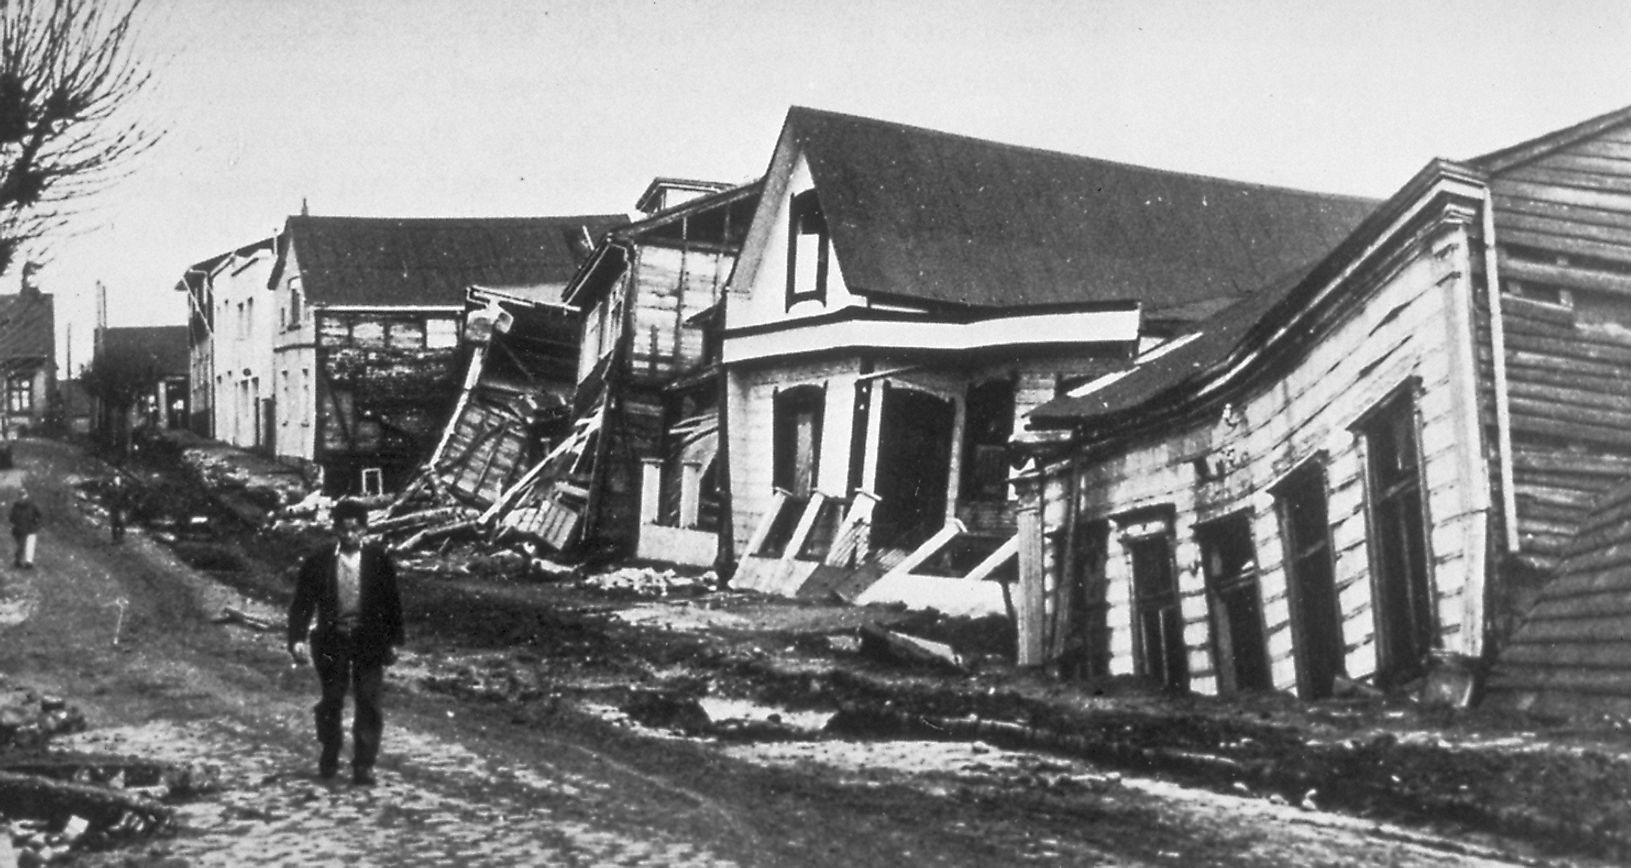 In 1960, Valdivia experienced the most powerful earthquake of all time.